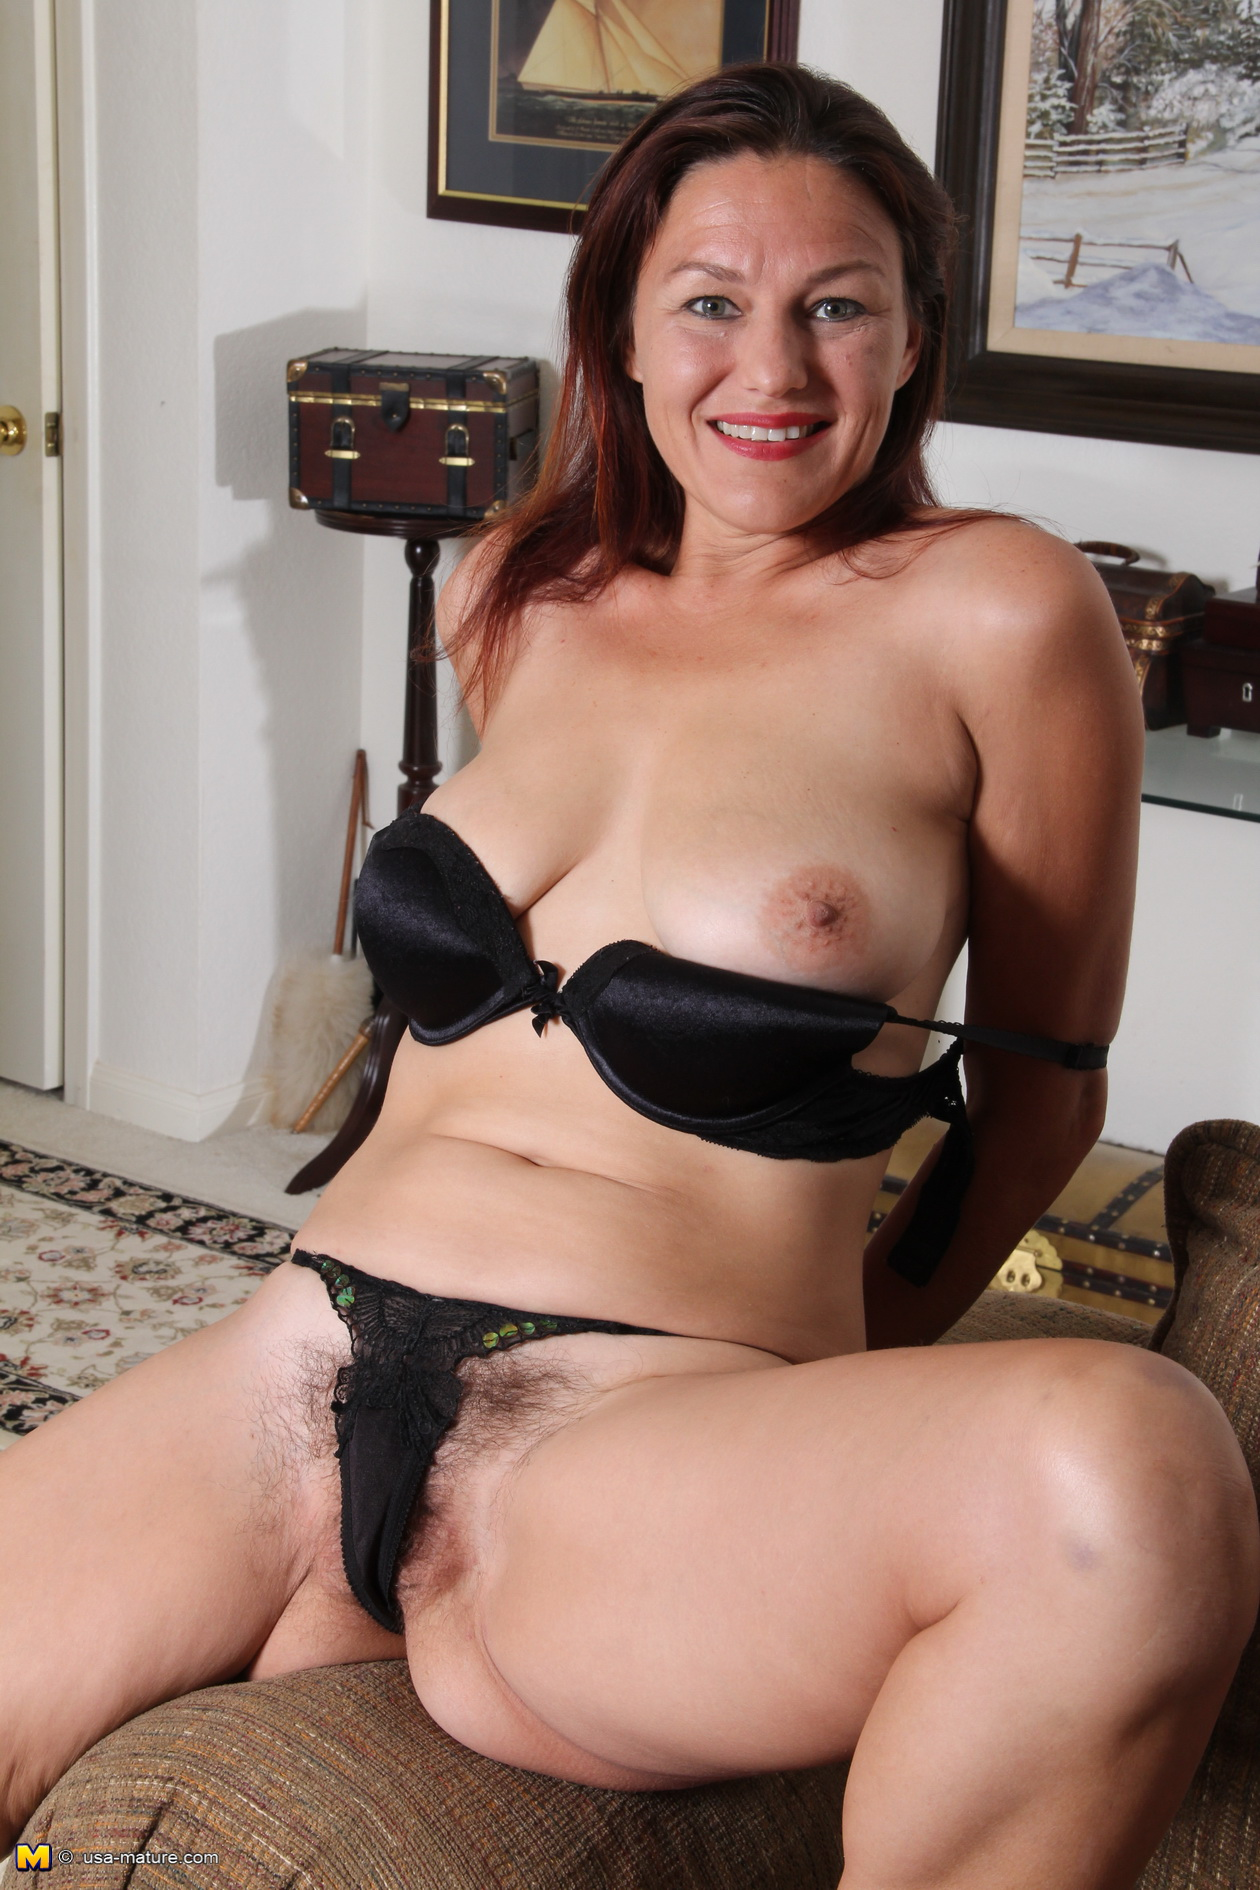 Hairy American housewife